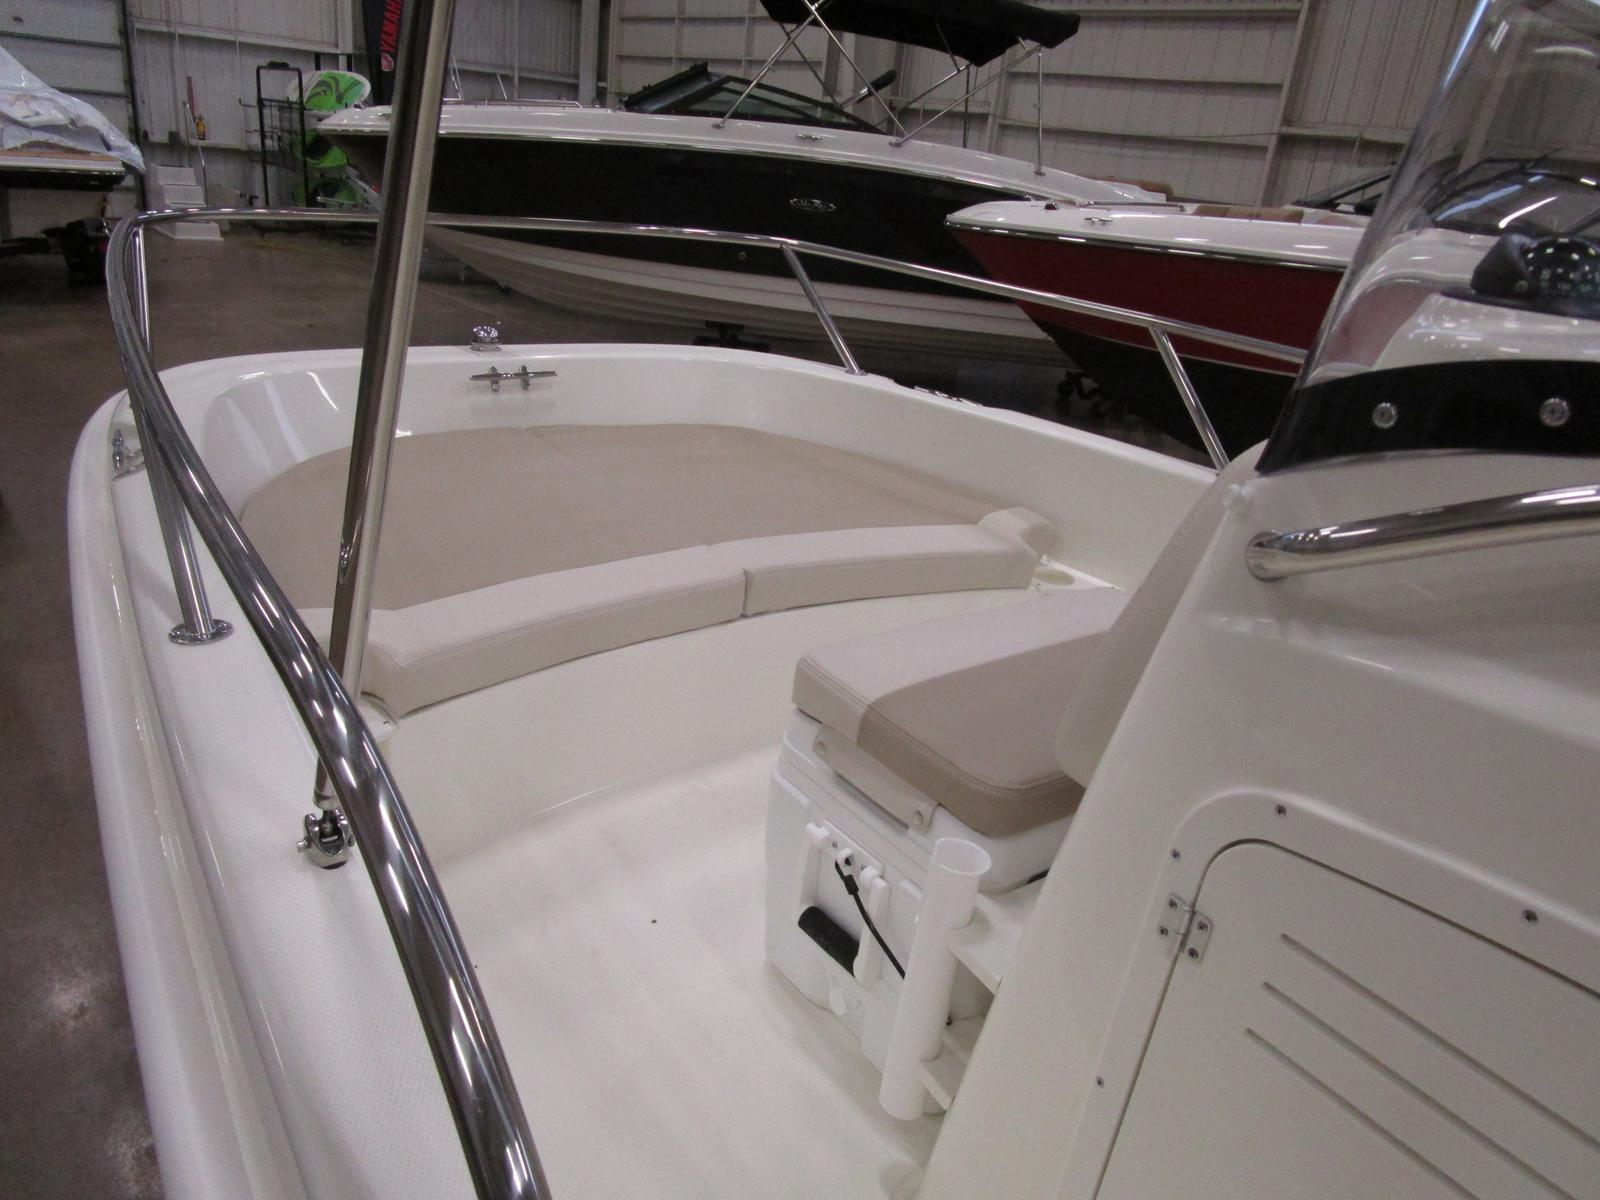 2019 Boston Whaler boat for sale, model of the boat is 170 Dauntless & Image # 4 of 5